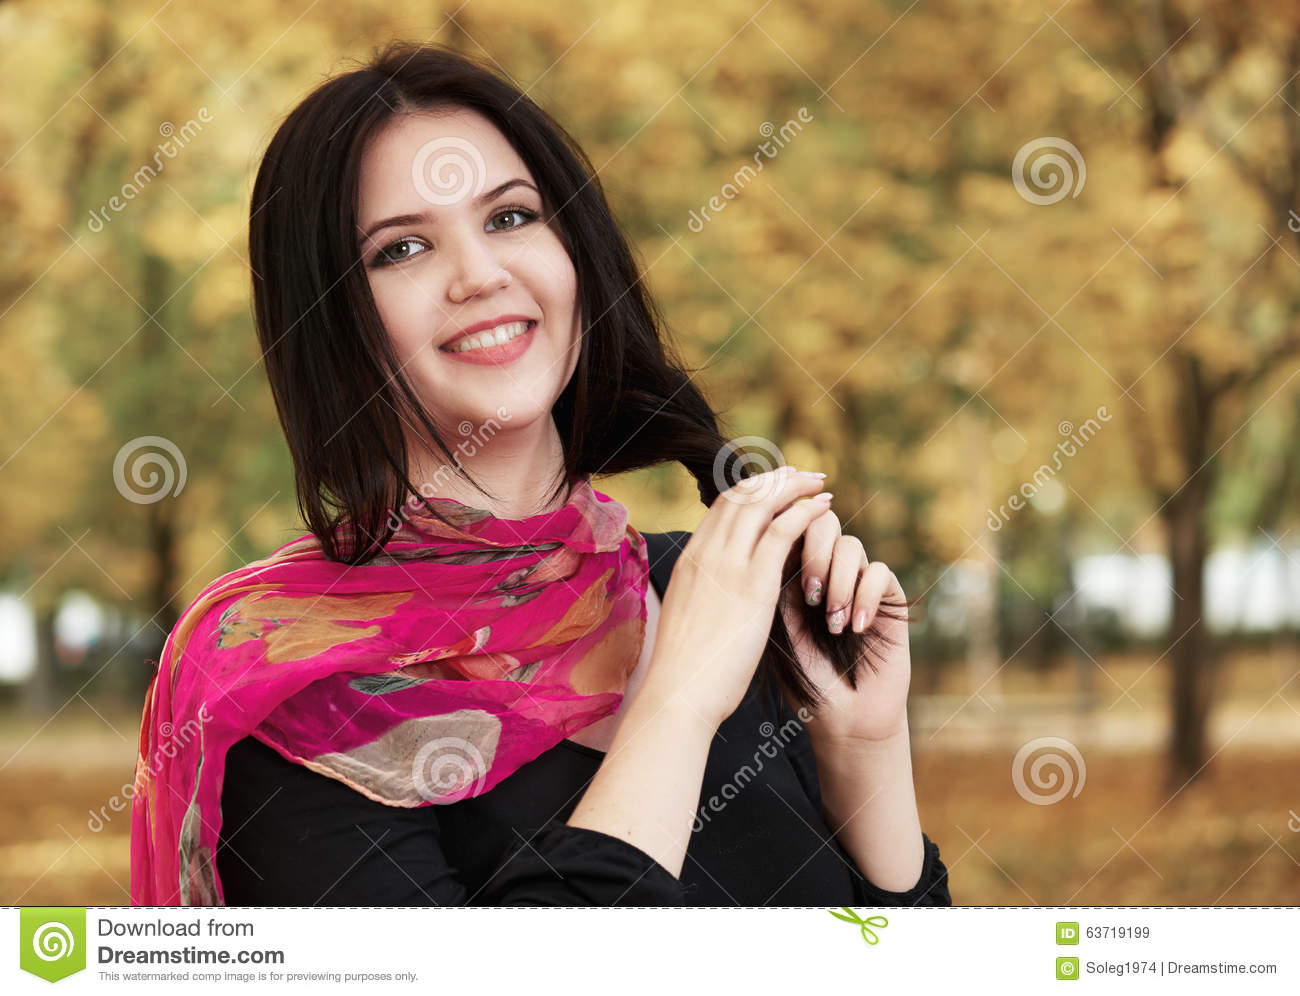 Beautiful Girl In Black Dress And Red Scarf In Yellow City Park